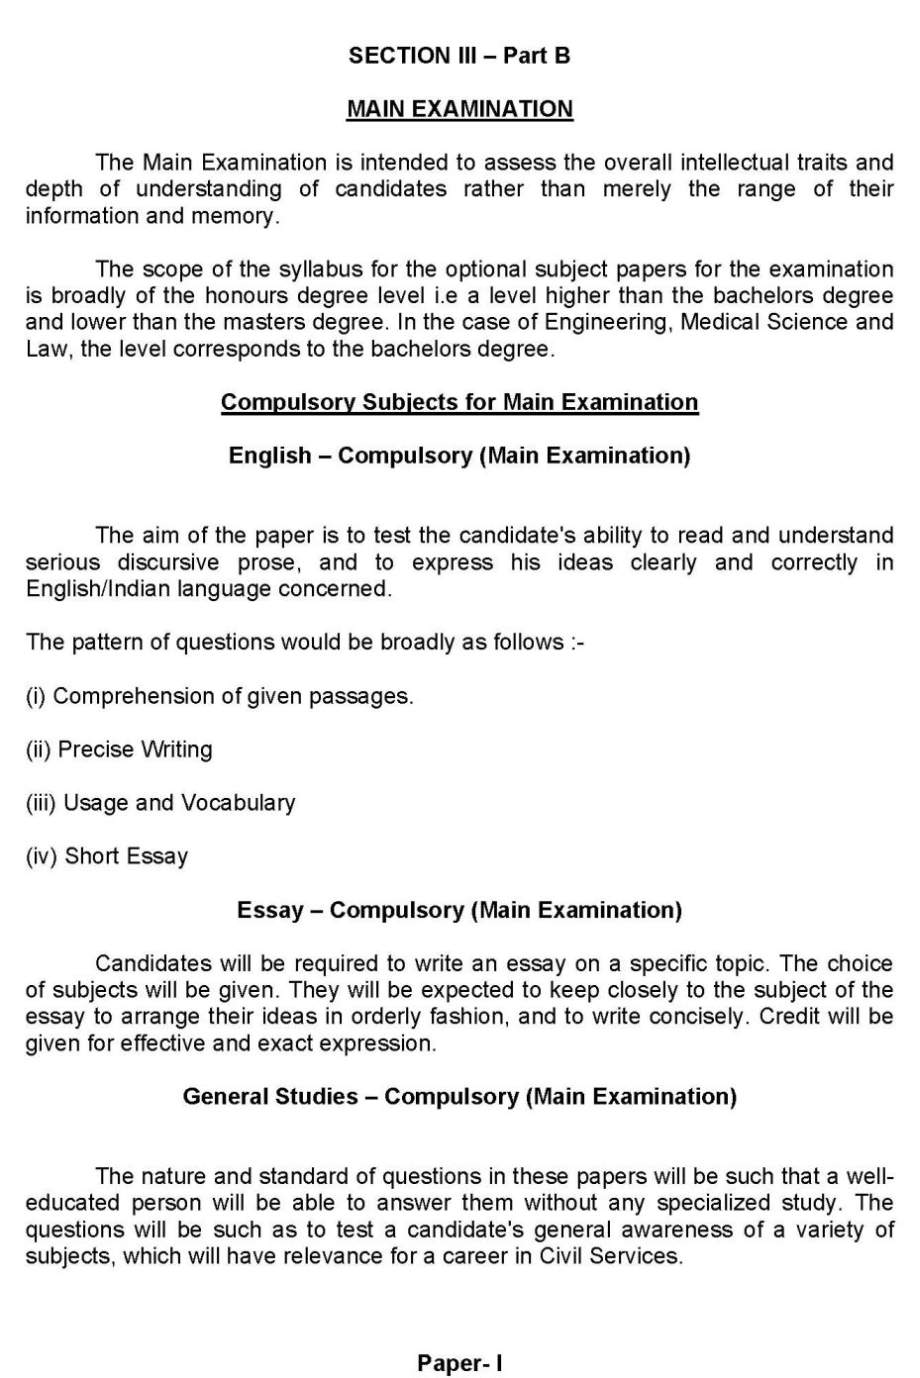 mcs exam preparation tips student forum if you want to see complete syllabus then you need to following attached file